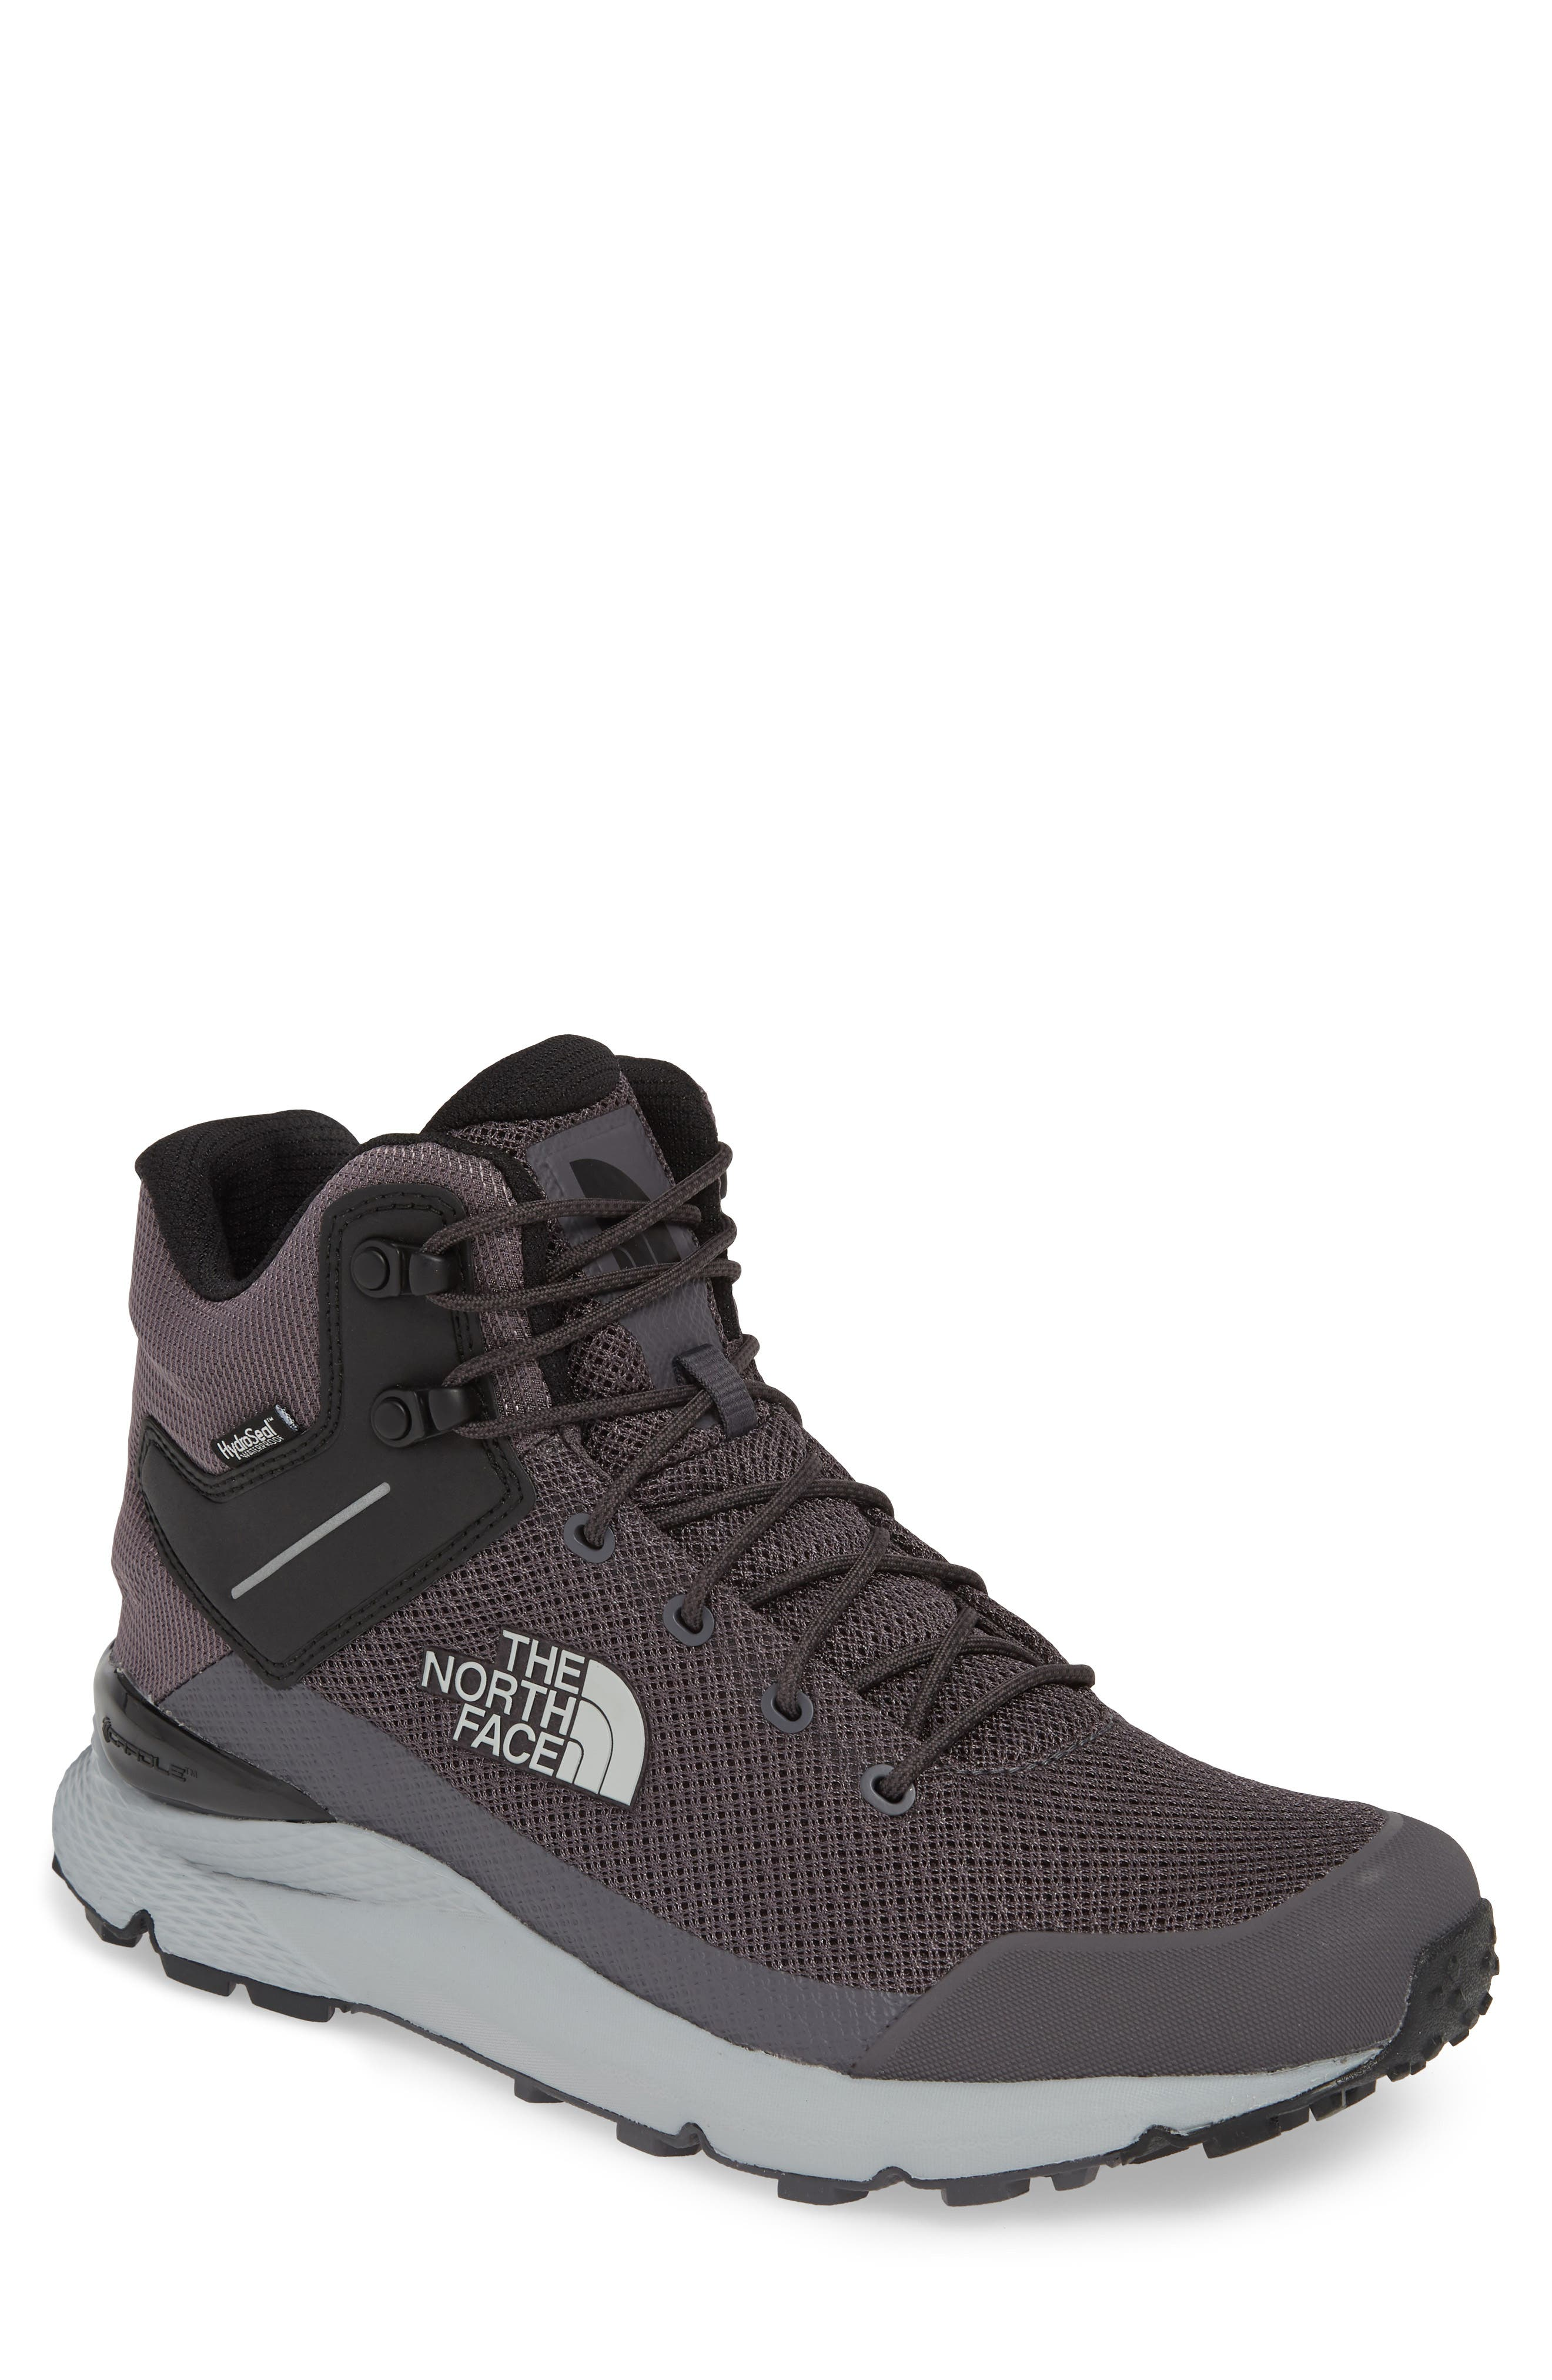 The North Face Val Mid Waterproof Hiking Boot, Black